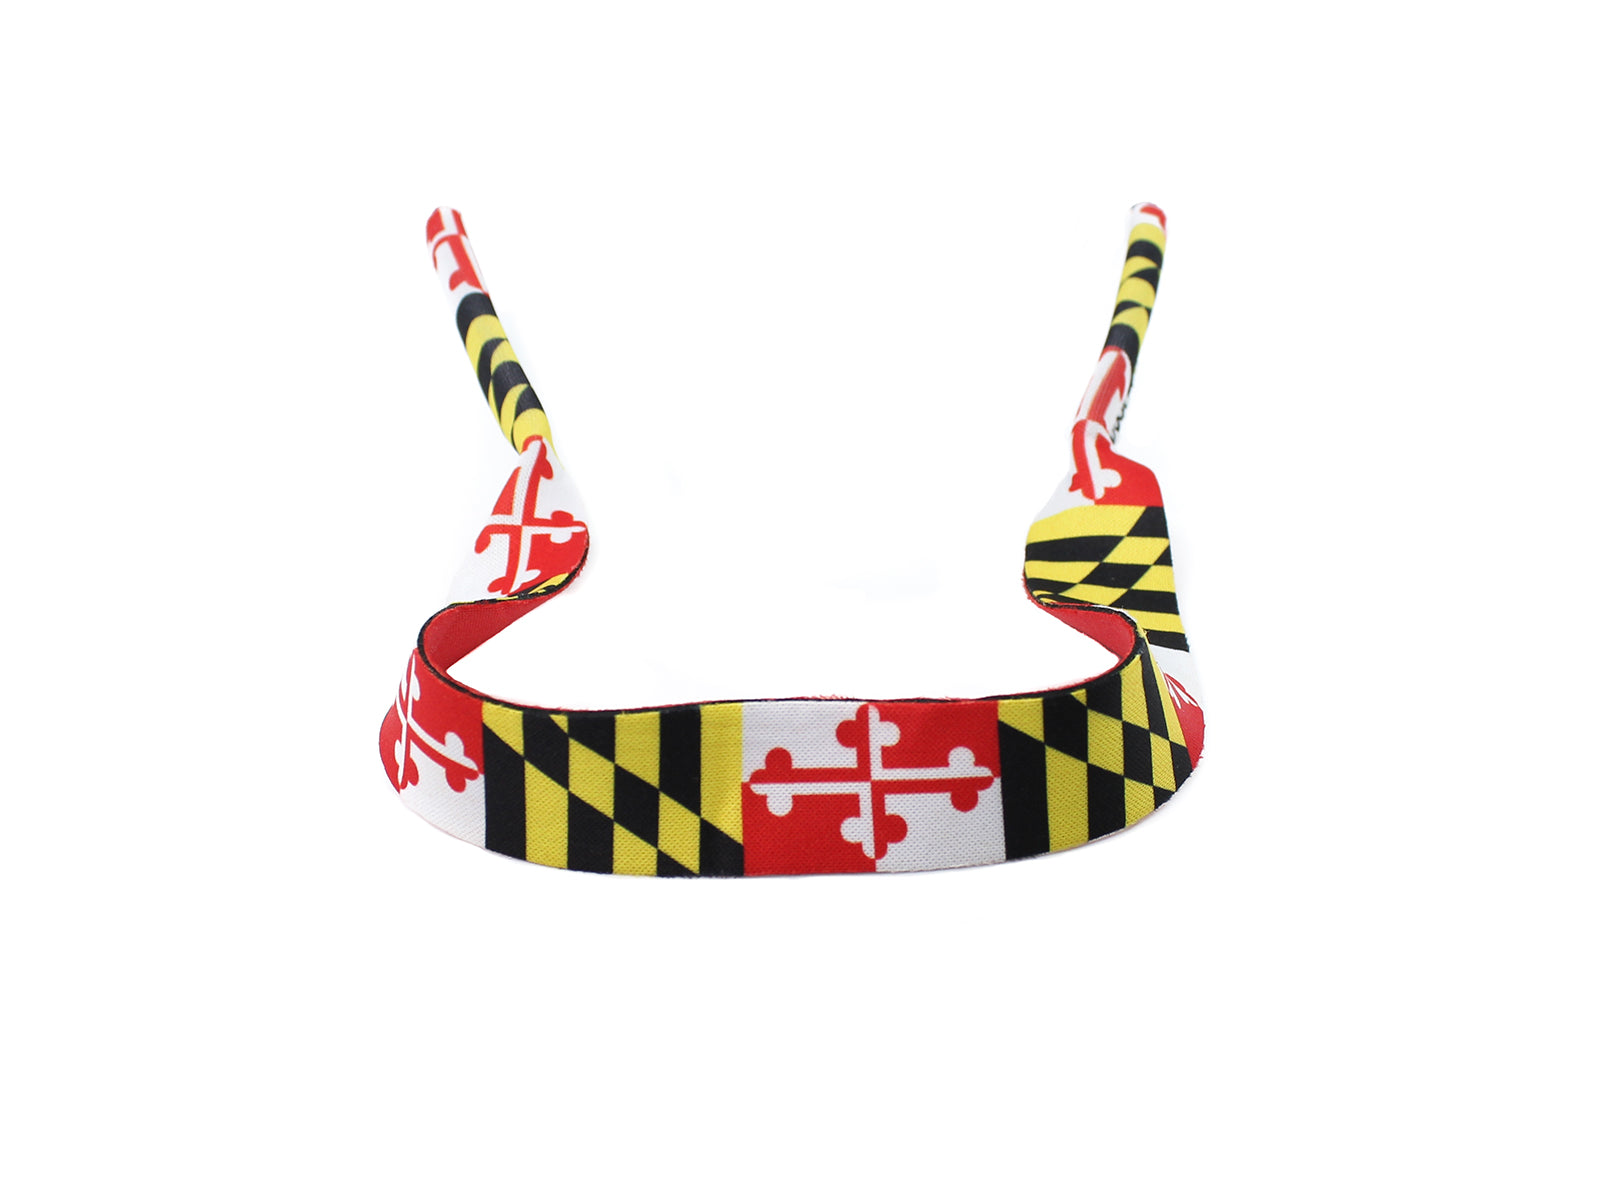 Sunglasses Strap: MD Flag